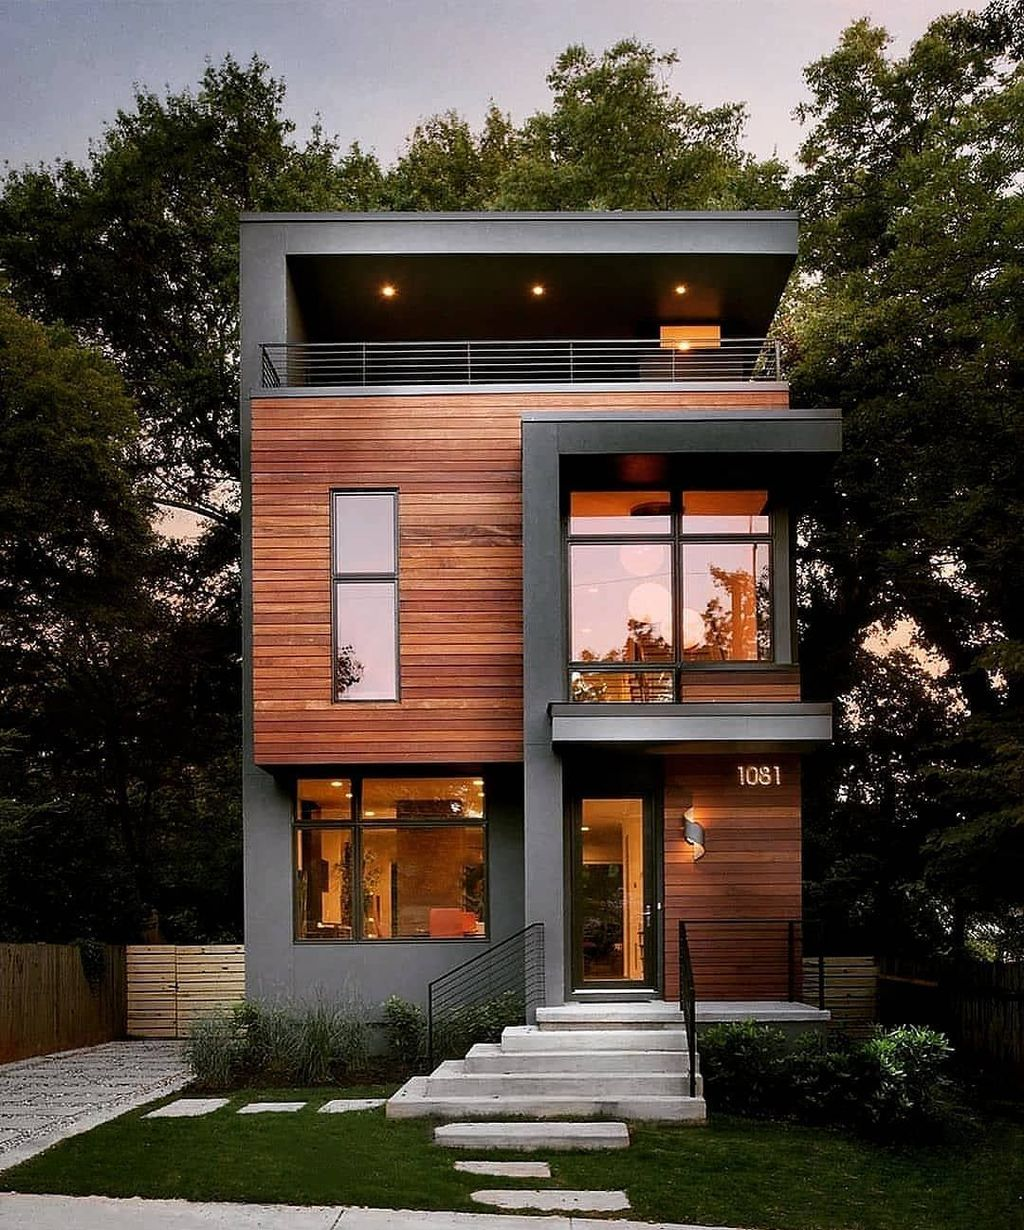 35 Awesome Small Contemporary House Designs Ideas To Try Small House Design Small House Design Plans Modern House Design